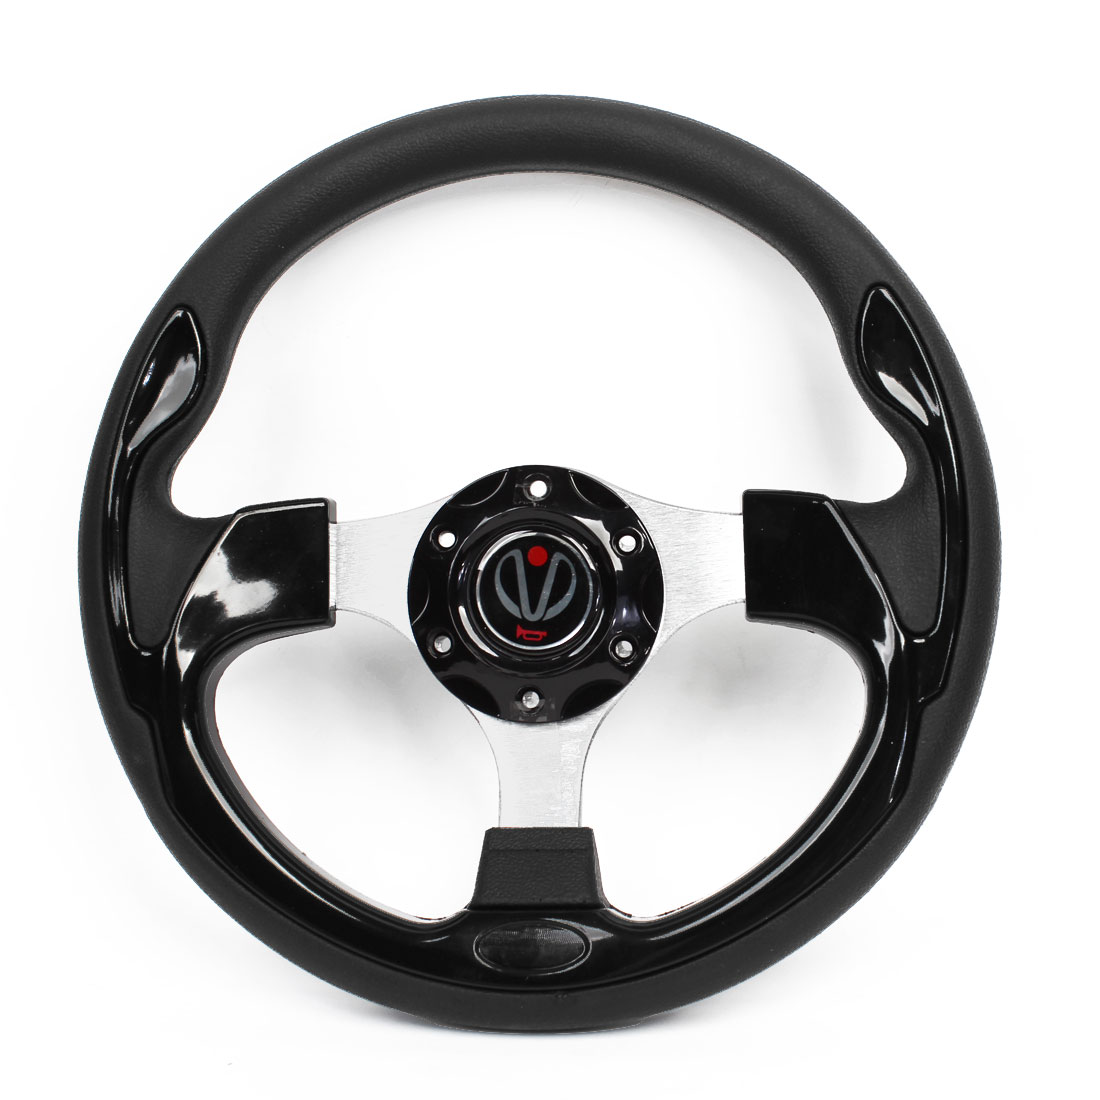 30cm Dia Black Faux Leather Coated Antislip Racing Steering Wheel for Auto